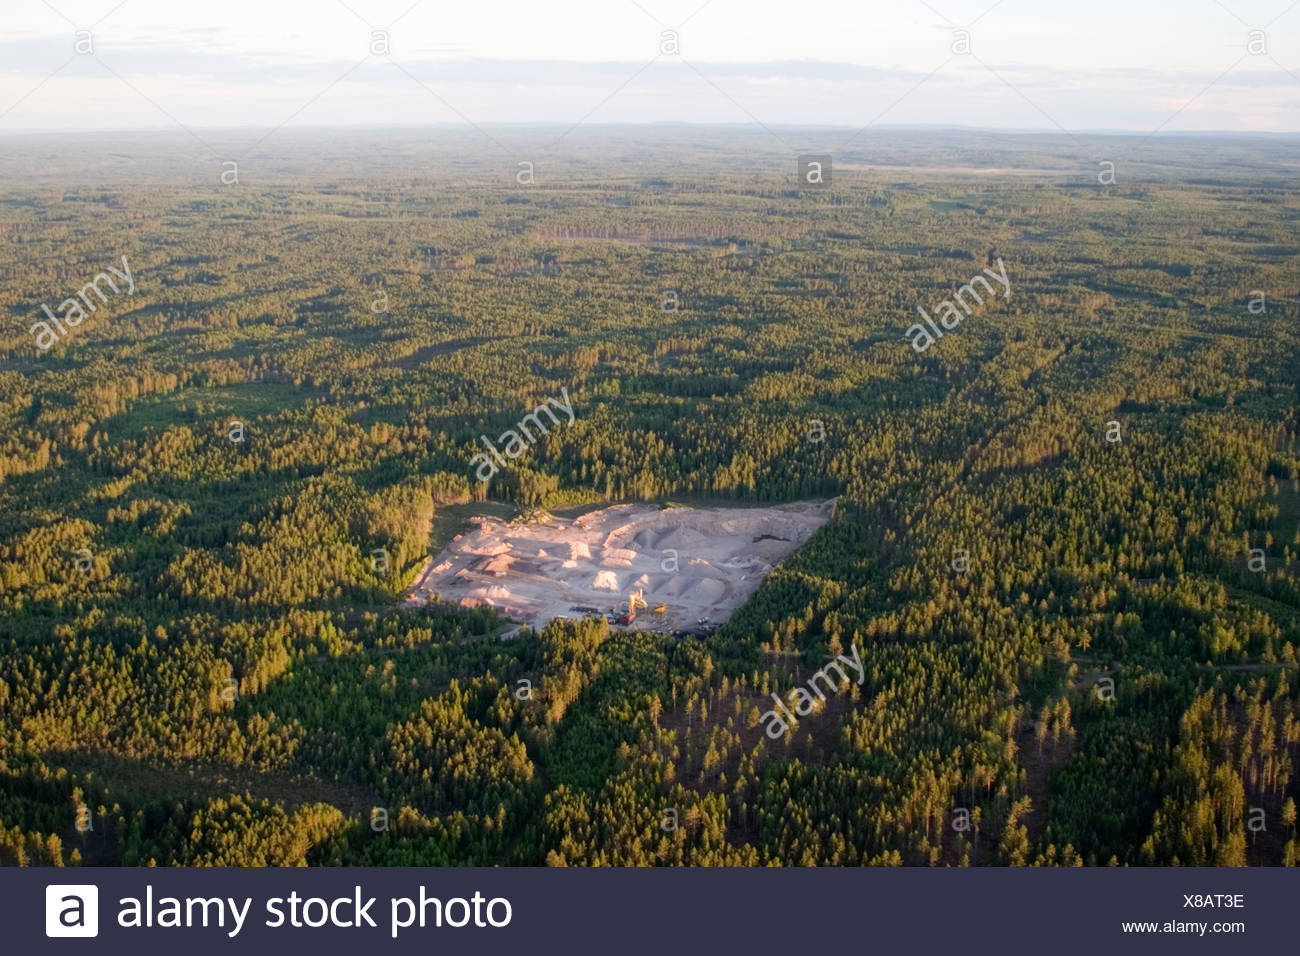 A gravel pit in a forest, aerial view, Sweden. - Stock Image